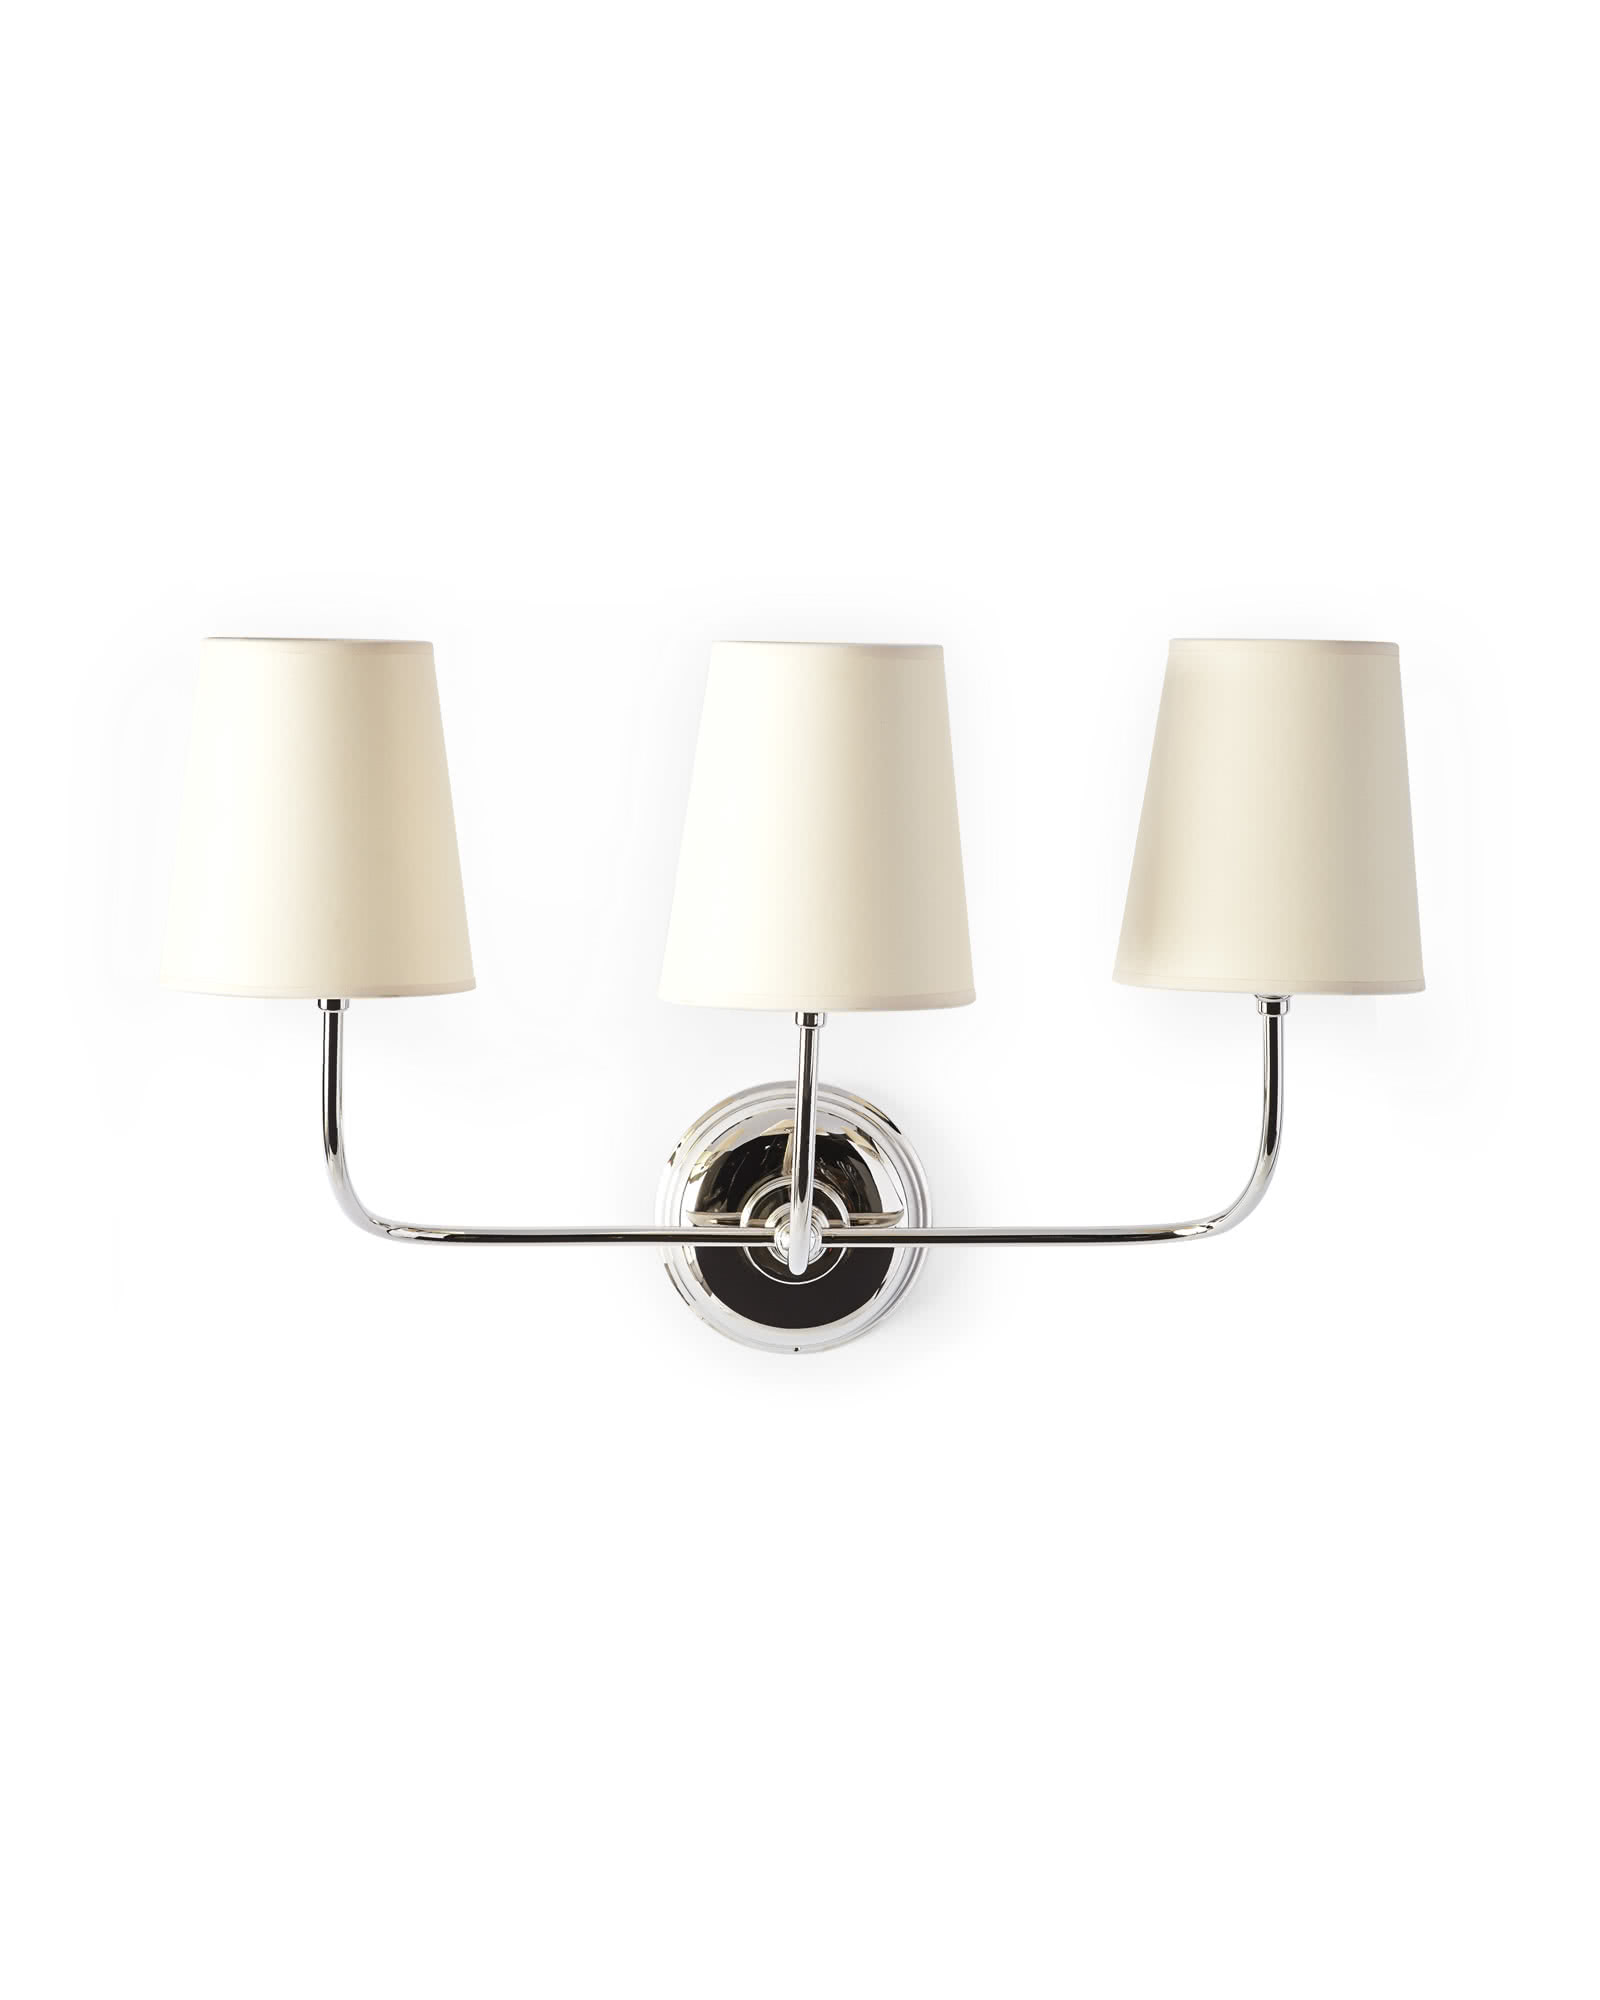 nickel hvl larger wall friend lighting free valley photo email polished wentworth a p light htm hudson sconce